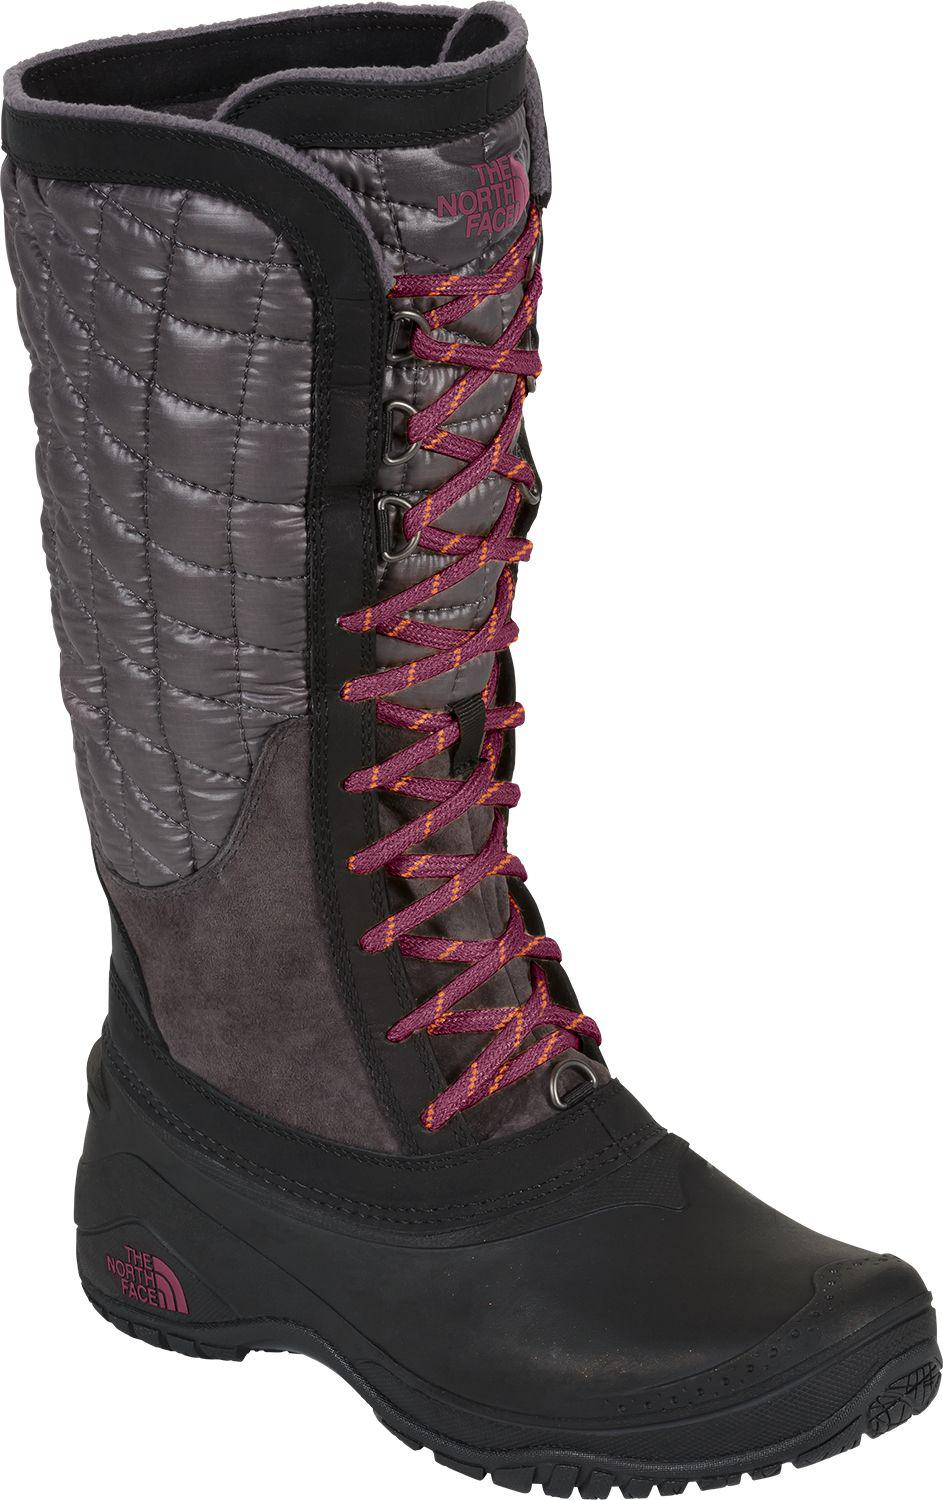 81f93cbcd The North Face Purple Thermoball Utility Insulated Waterproof Winter Boots  for men